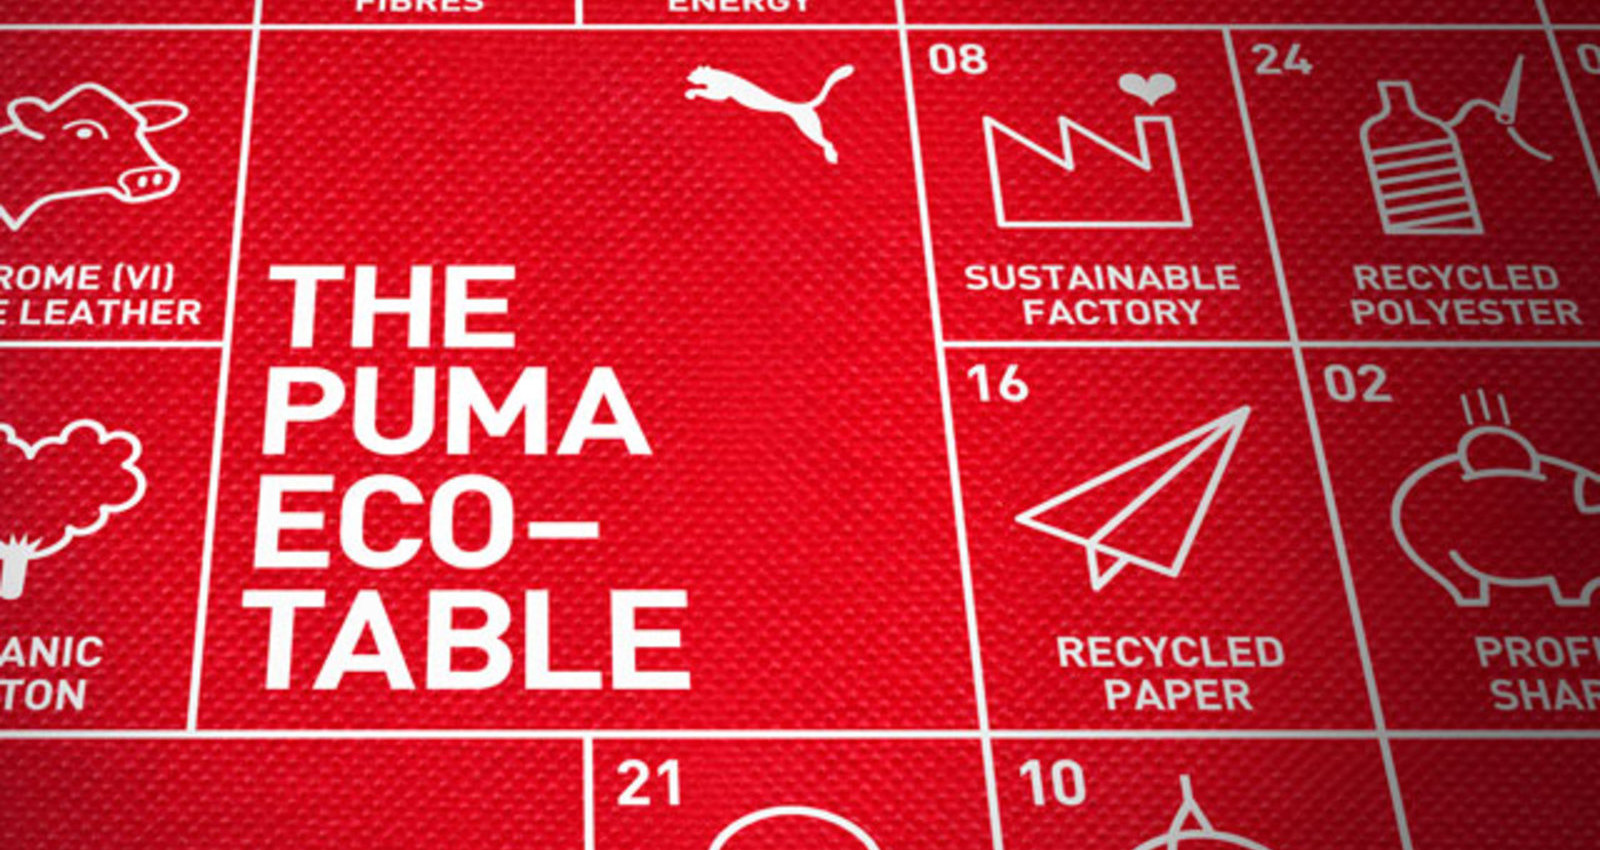 The PUMA Eco-Table